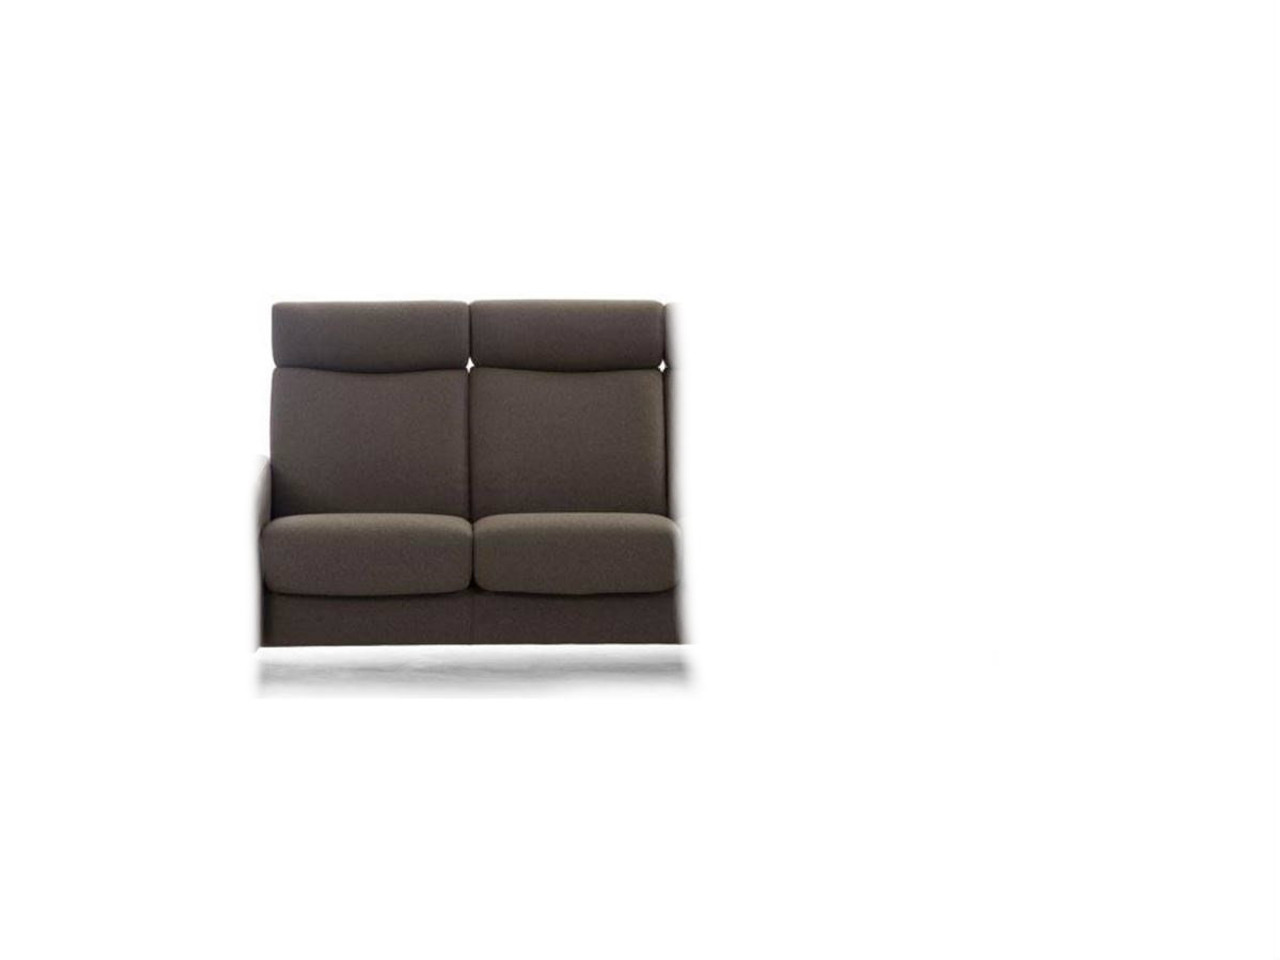 Stressless Sessel You Preise Stressless Couch Affordable Clementine Paloma Looks Sharp On A